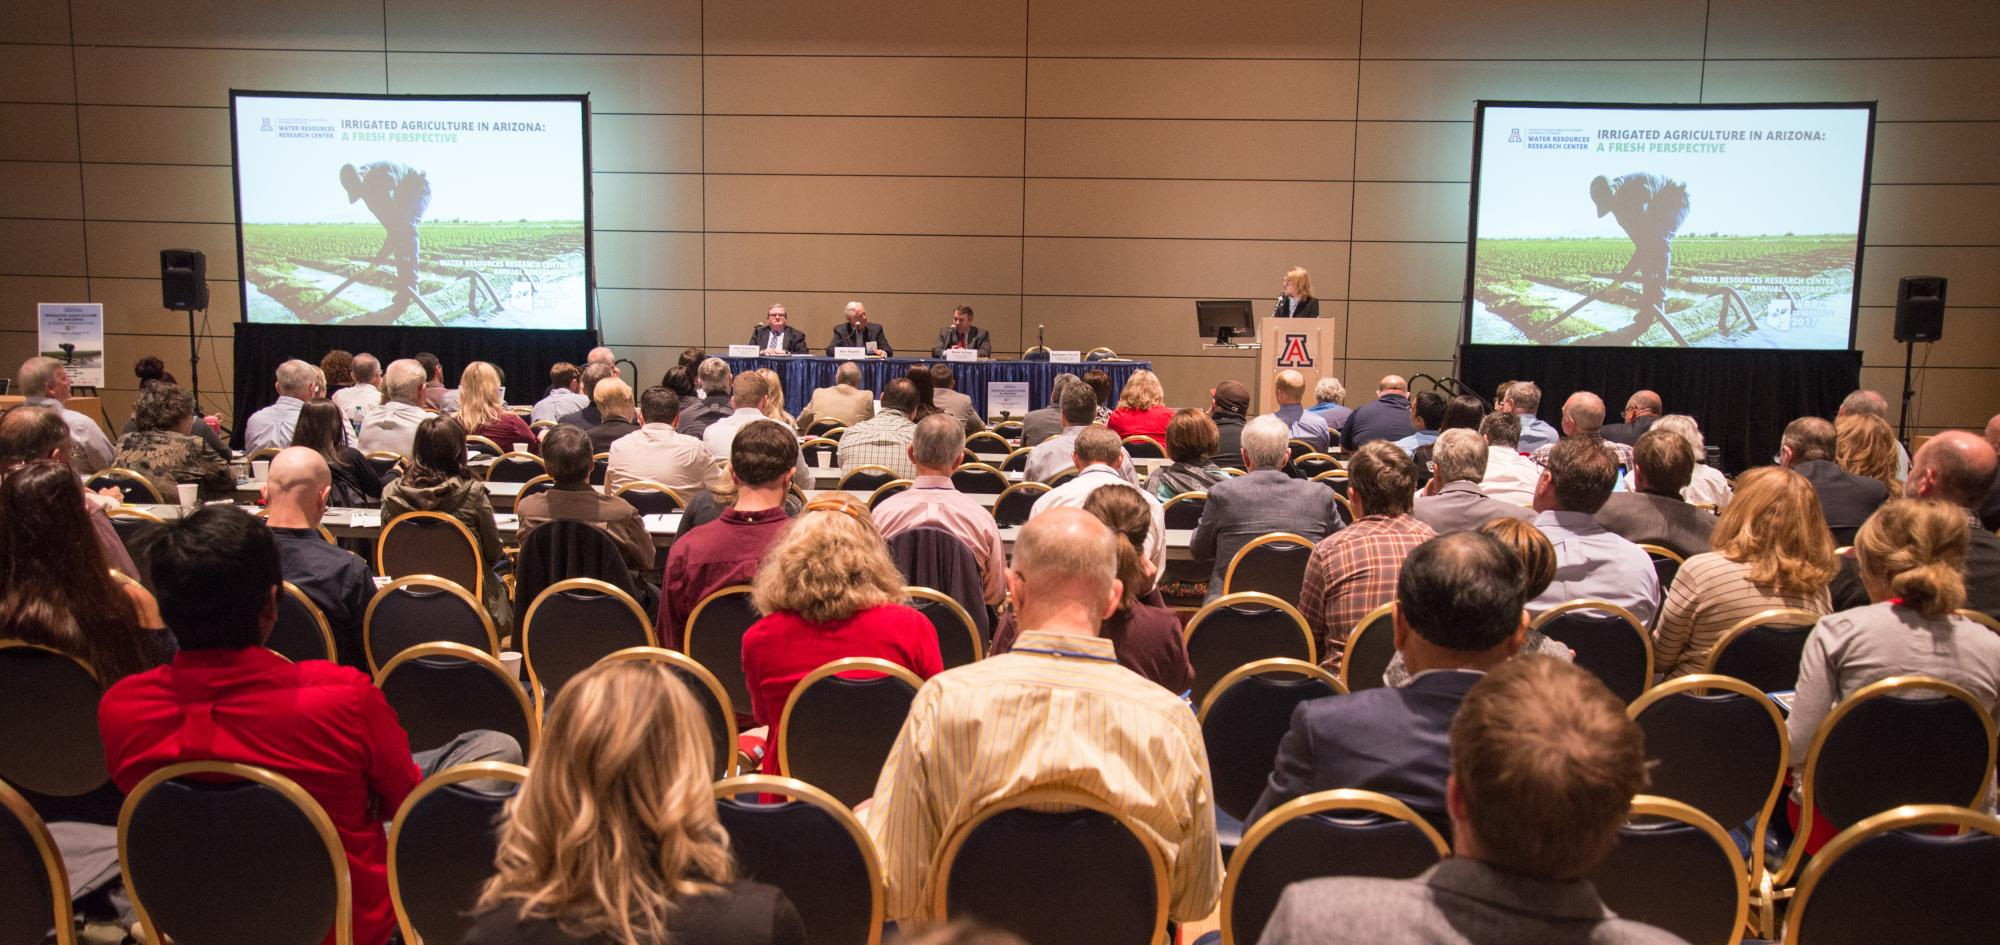 Events such as the Water Resources Research Center annual conference draw top industry speakers, as well as interested spectators from the UA and Tucson communities.